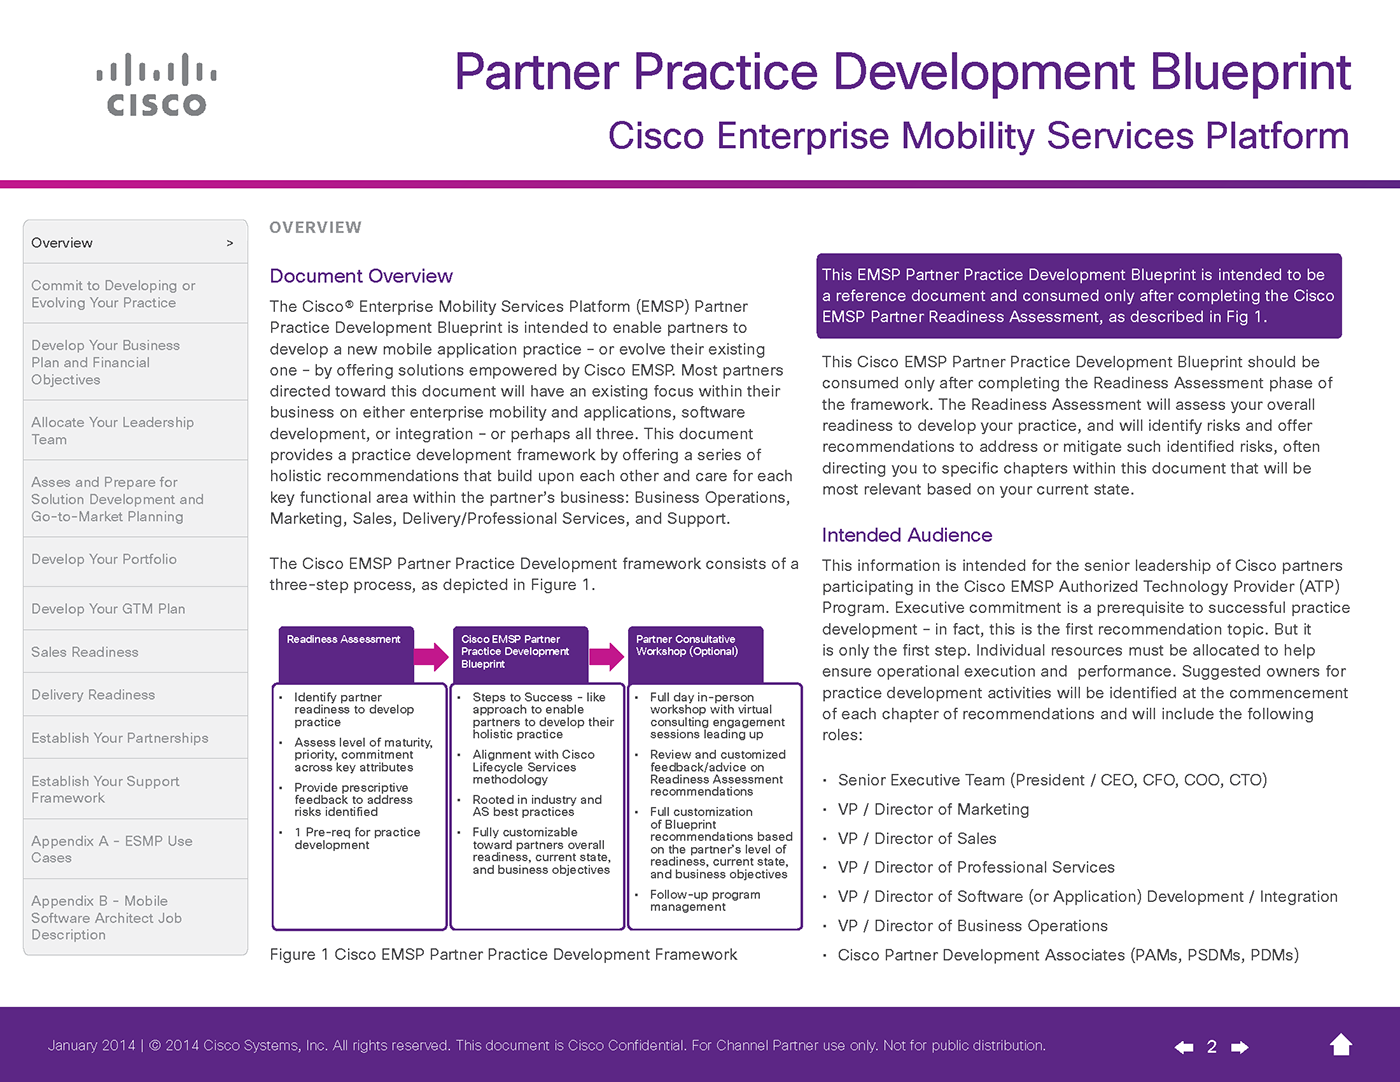 cisco systems develops a collaborative approch Need essay sample on small-medium businesses offered by cisco systems inc cisco case cisco systems develops a collaborative approch.